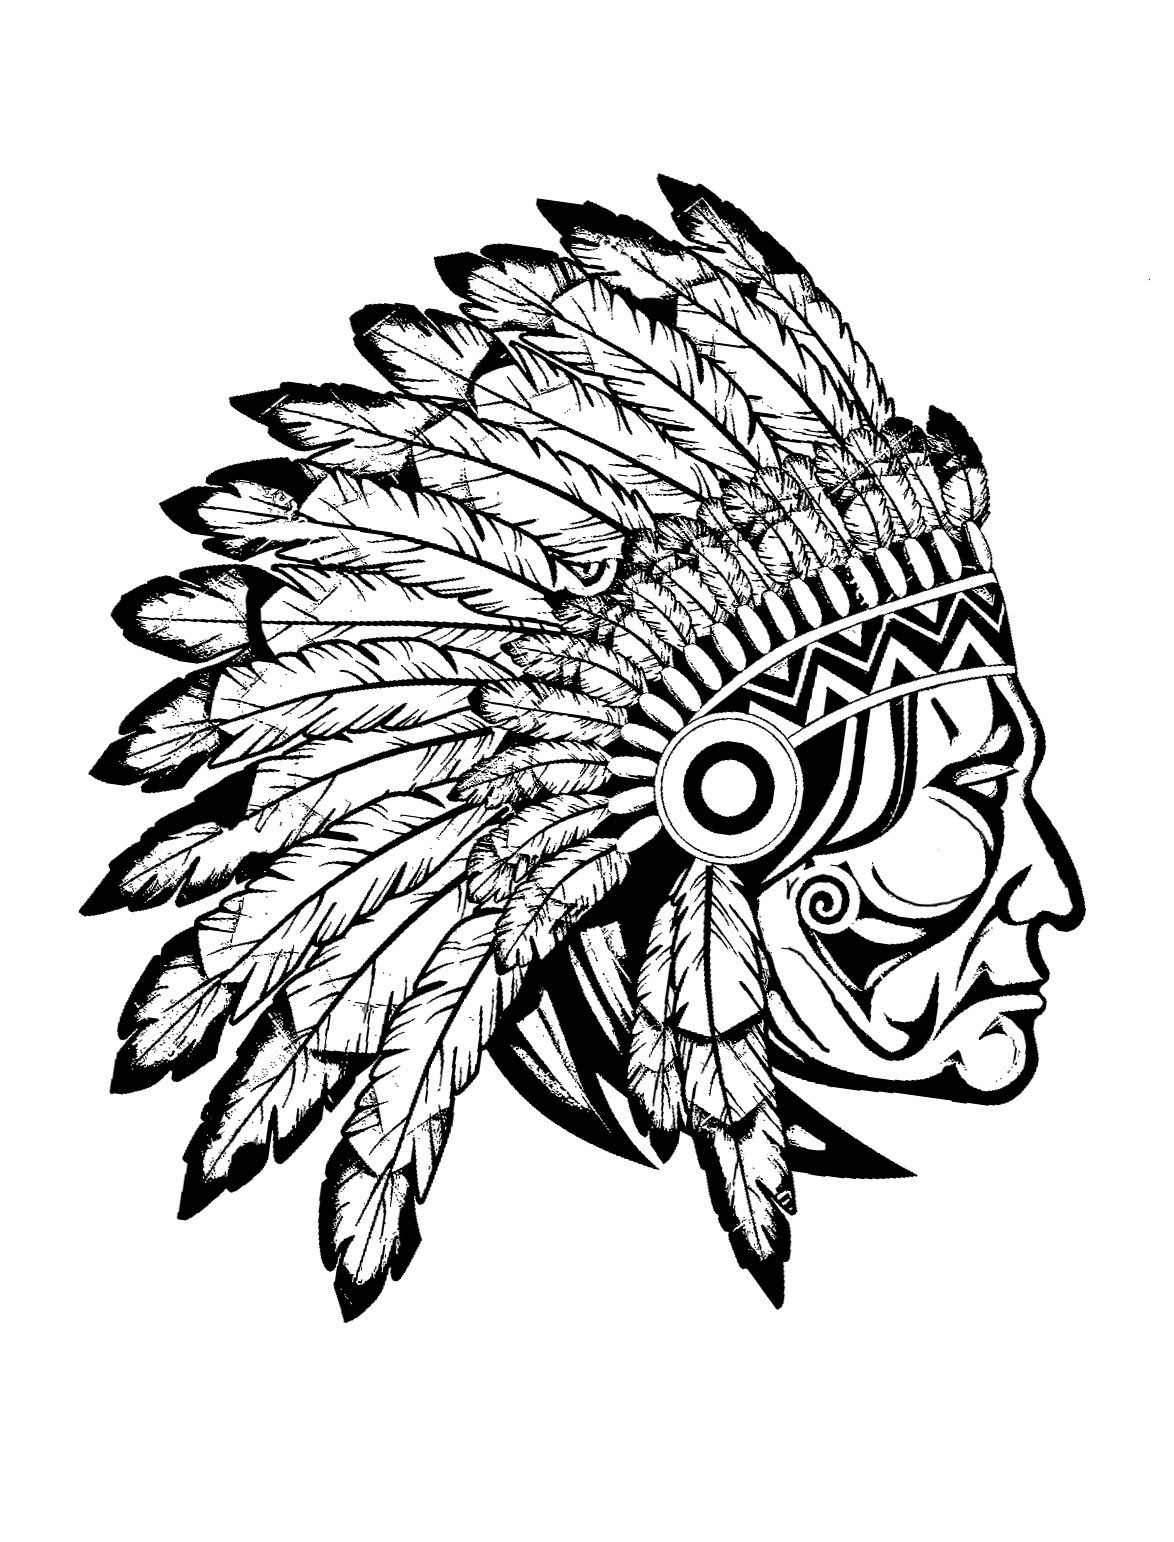 free native american indian coloring pages free coloring page coloring adult native american indian indian american pages coloring free native